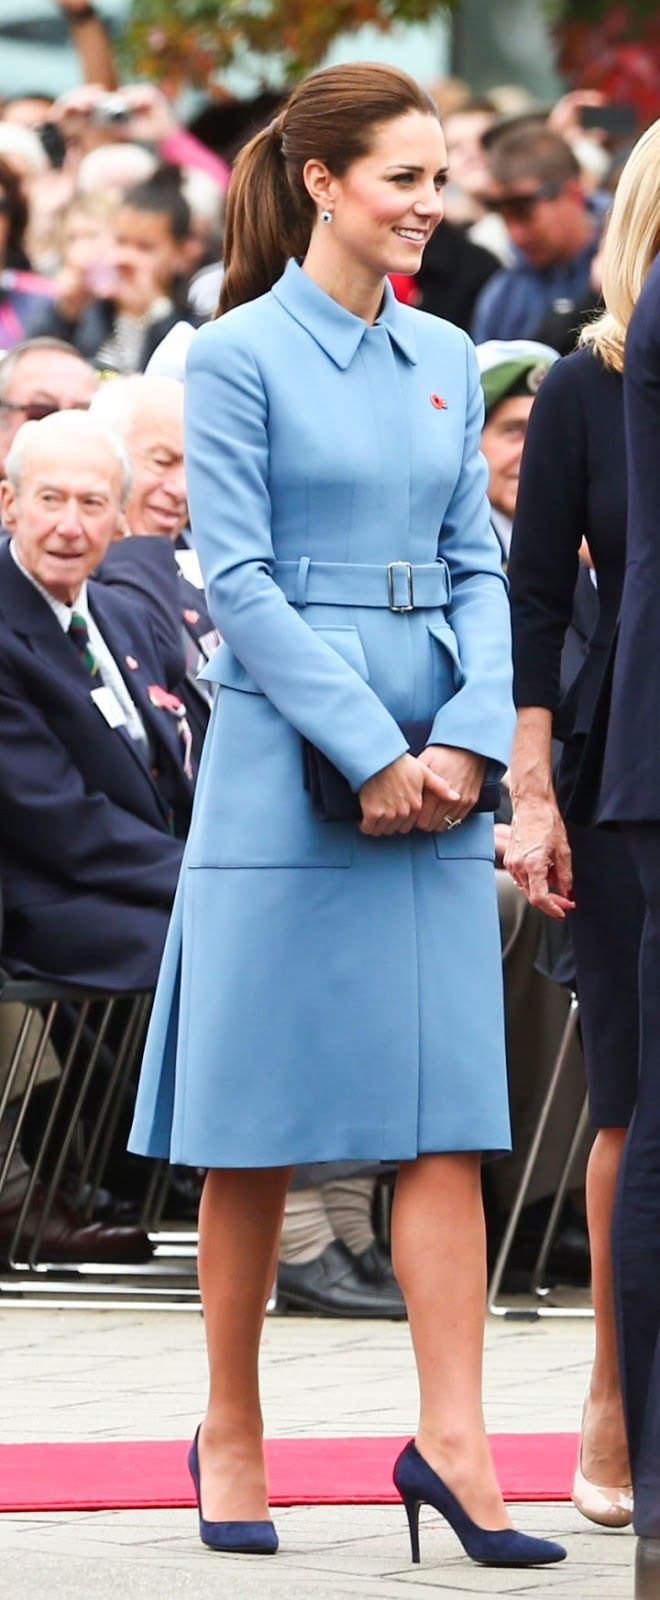 188 best Royal Beauty images on Pinterest | Duchess of cambridge ...